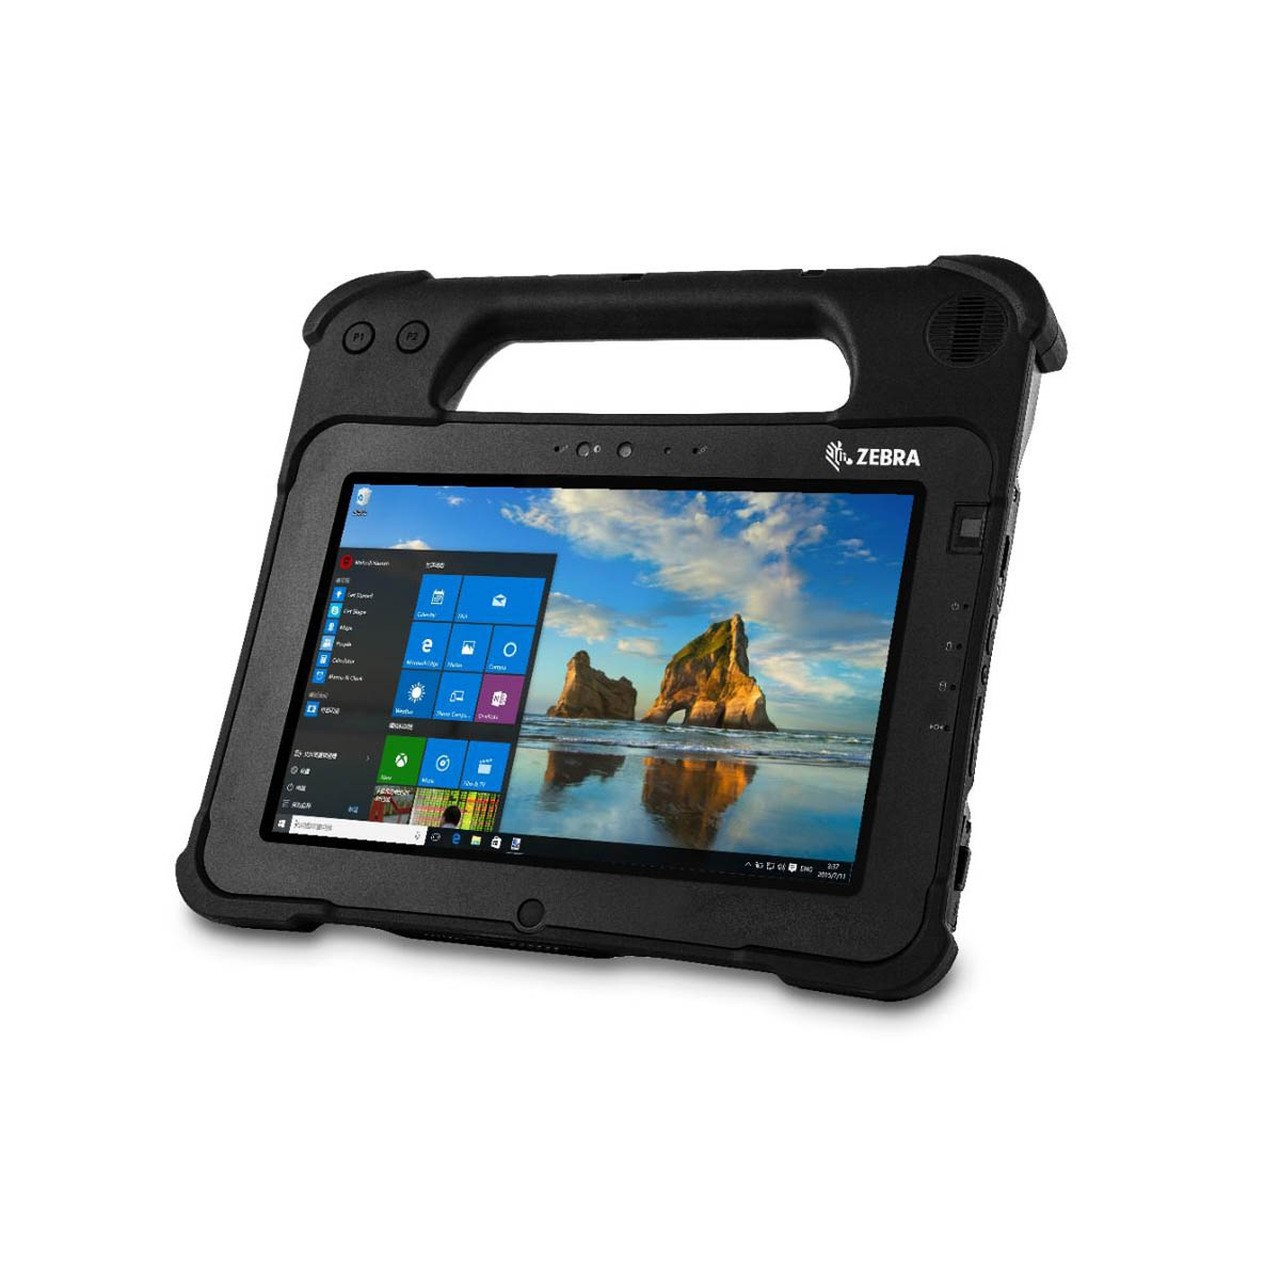 Zebra RPL10-LXS5X4W1S0X0X0 Intel Core i5-8250U 8GB 128GB W10P 10 Rugged Tablet